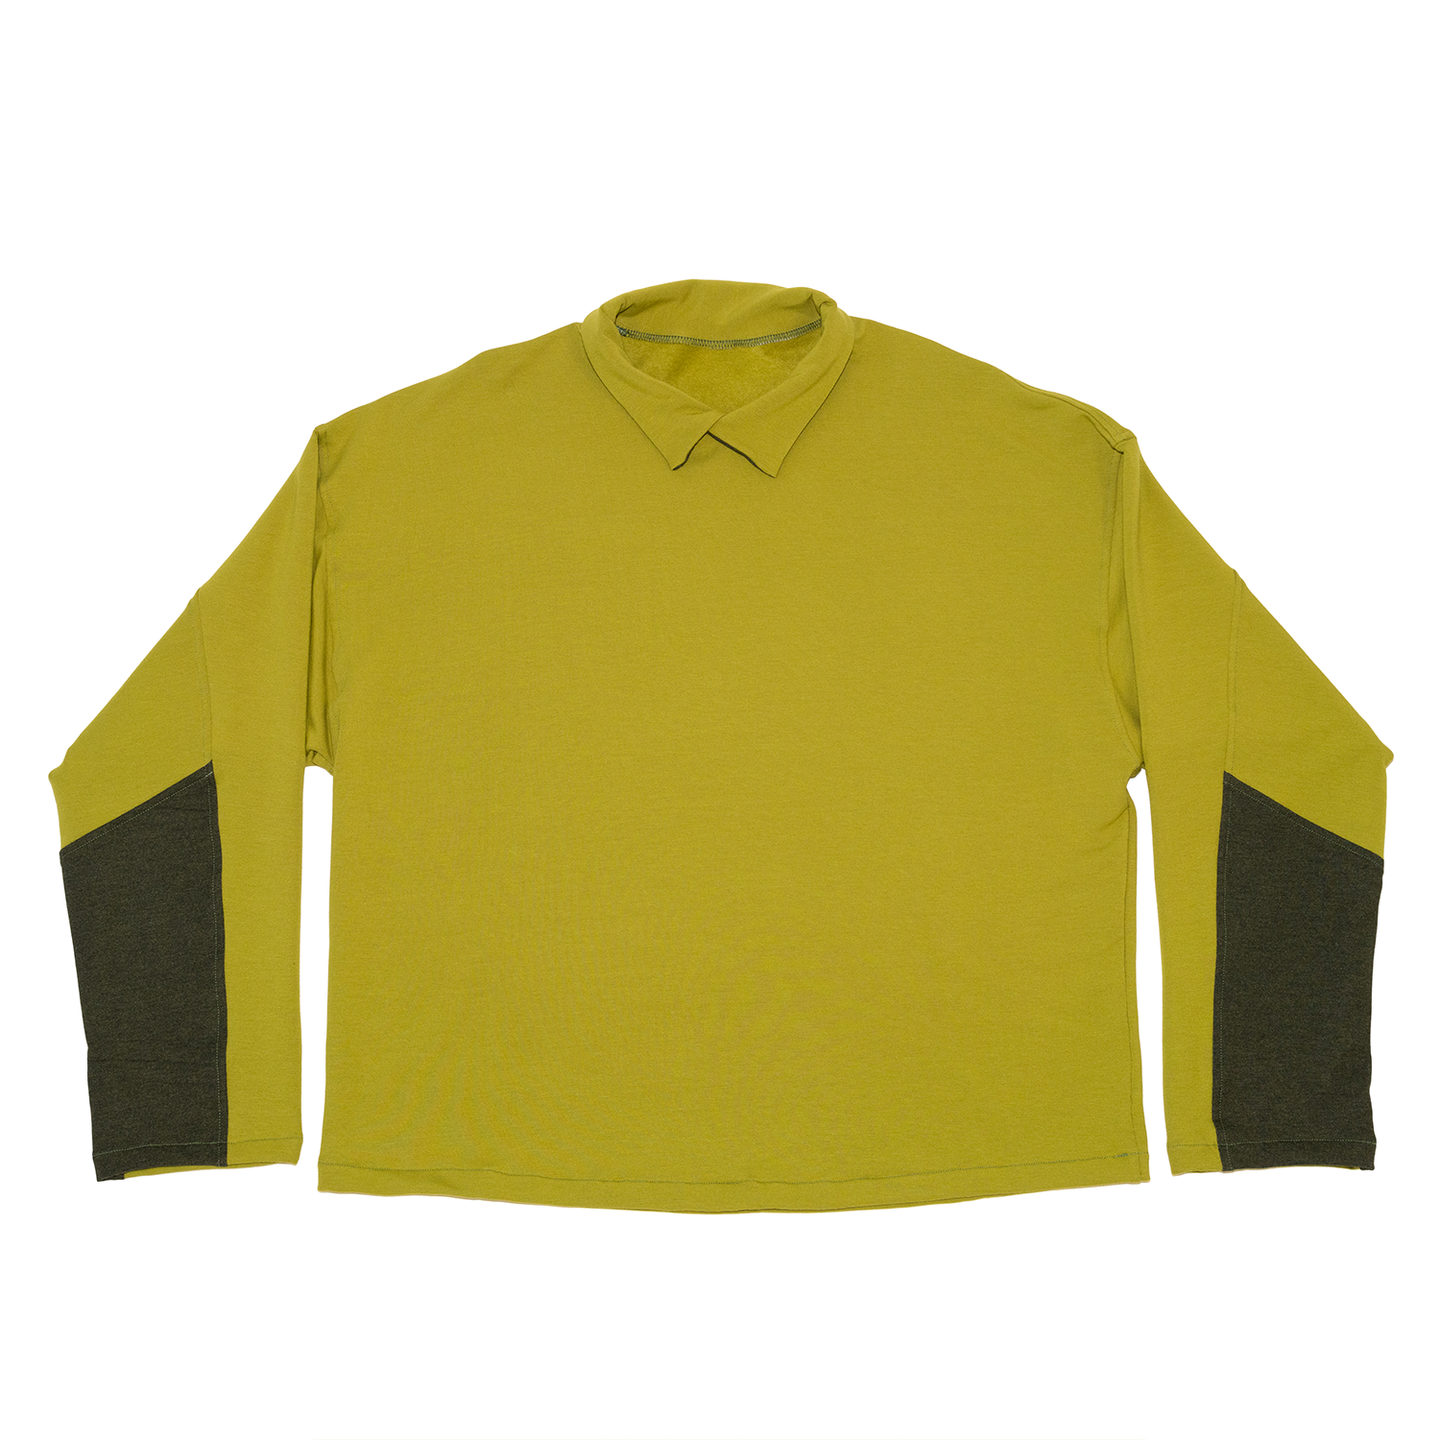 Collared Crewneck in Chartreuse